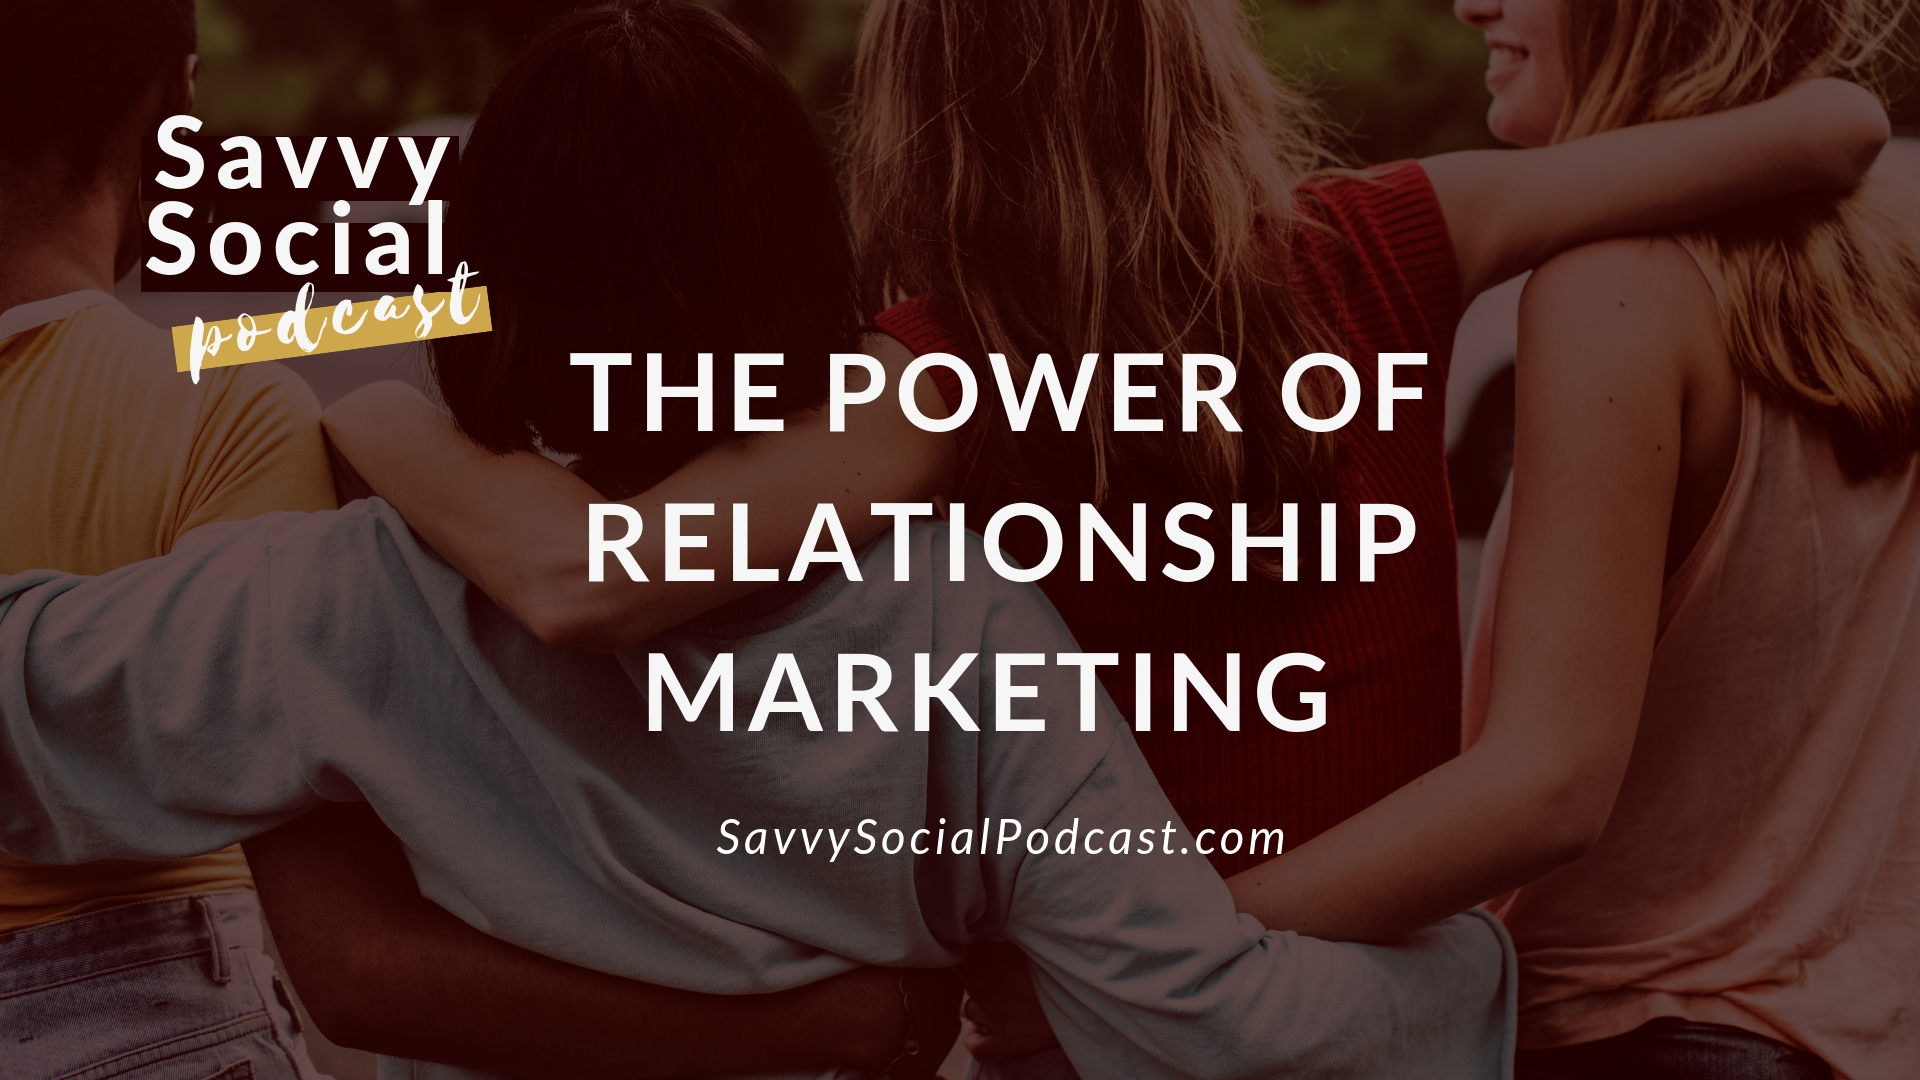 The Power of Relationship Marketing